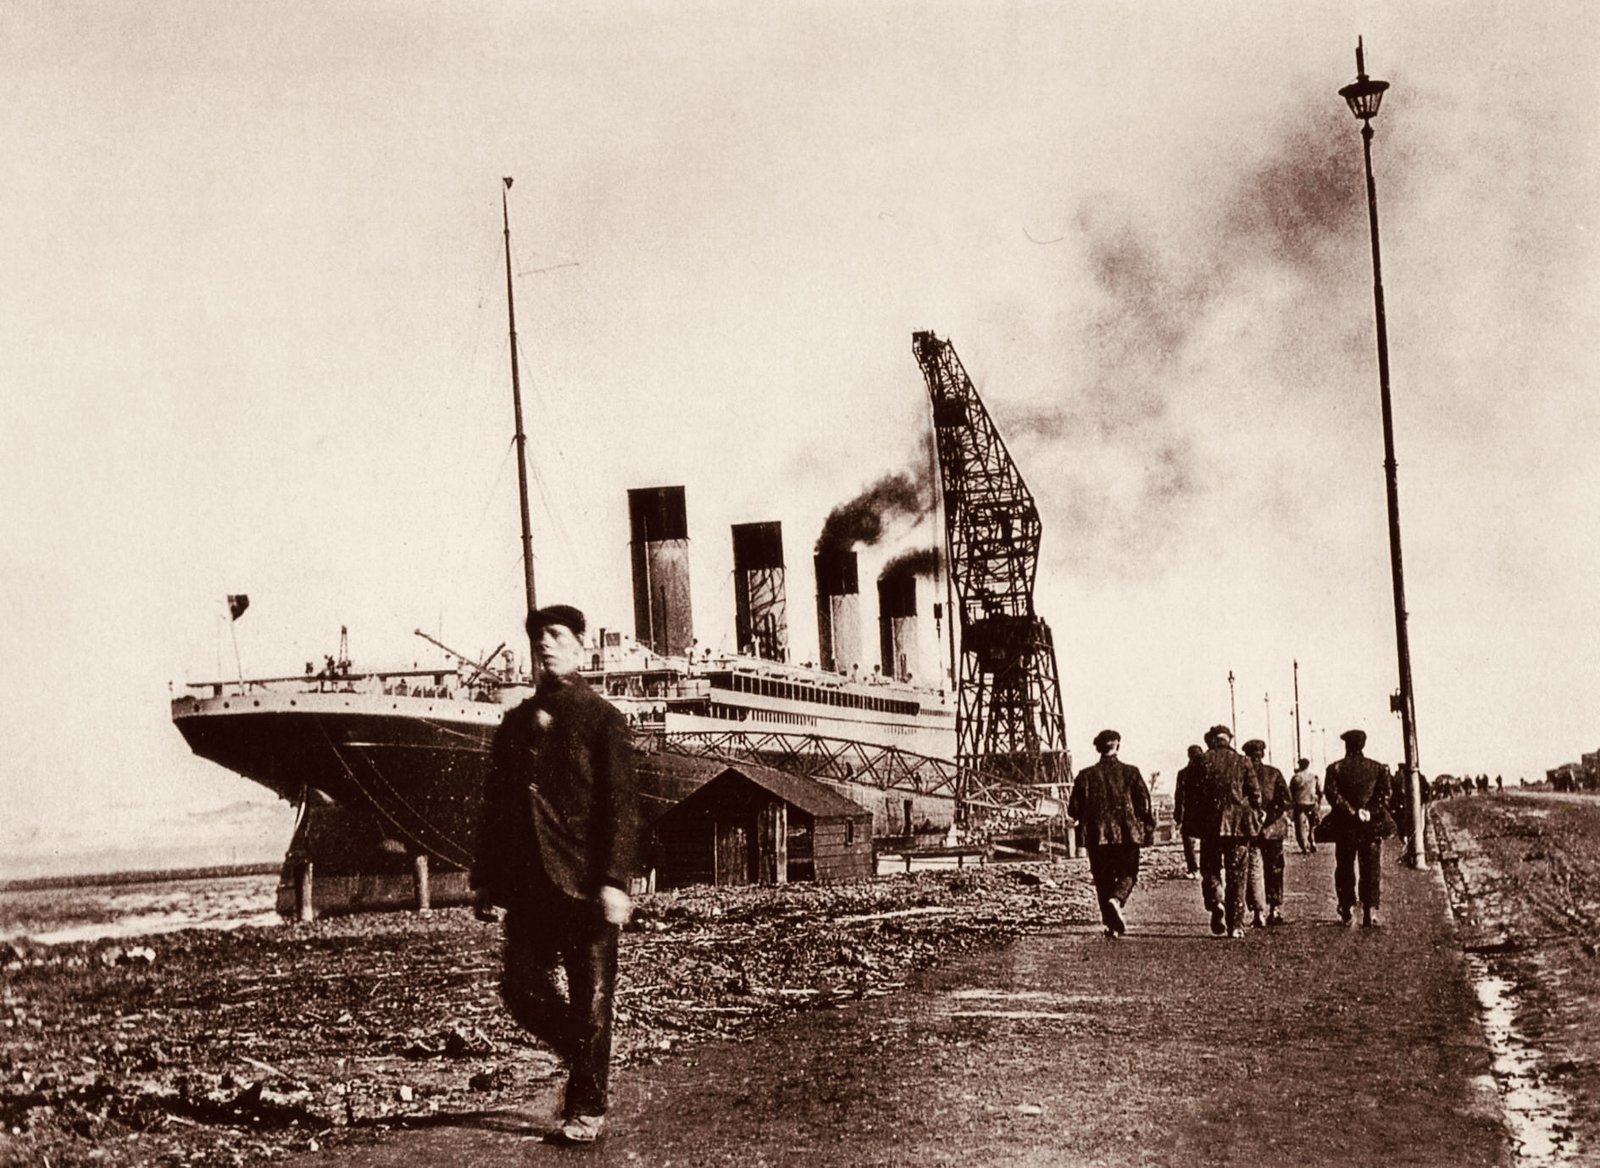 Titanic taken by John Kempster, April 1st 1912